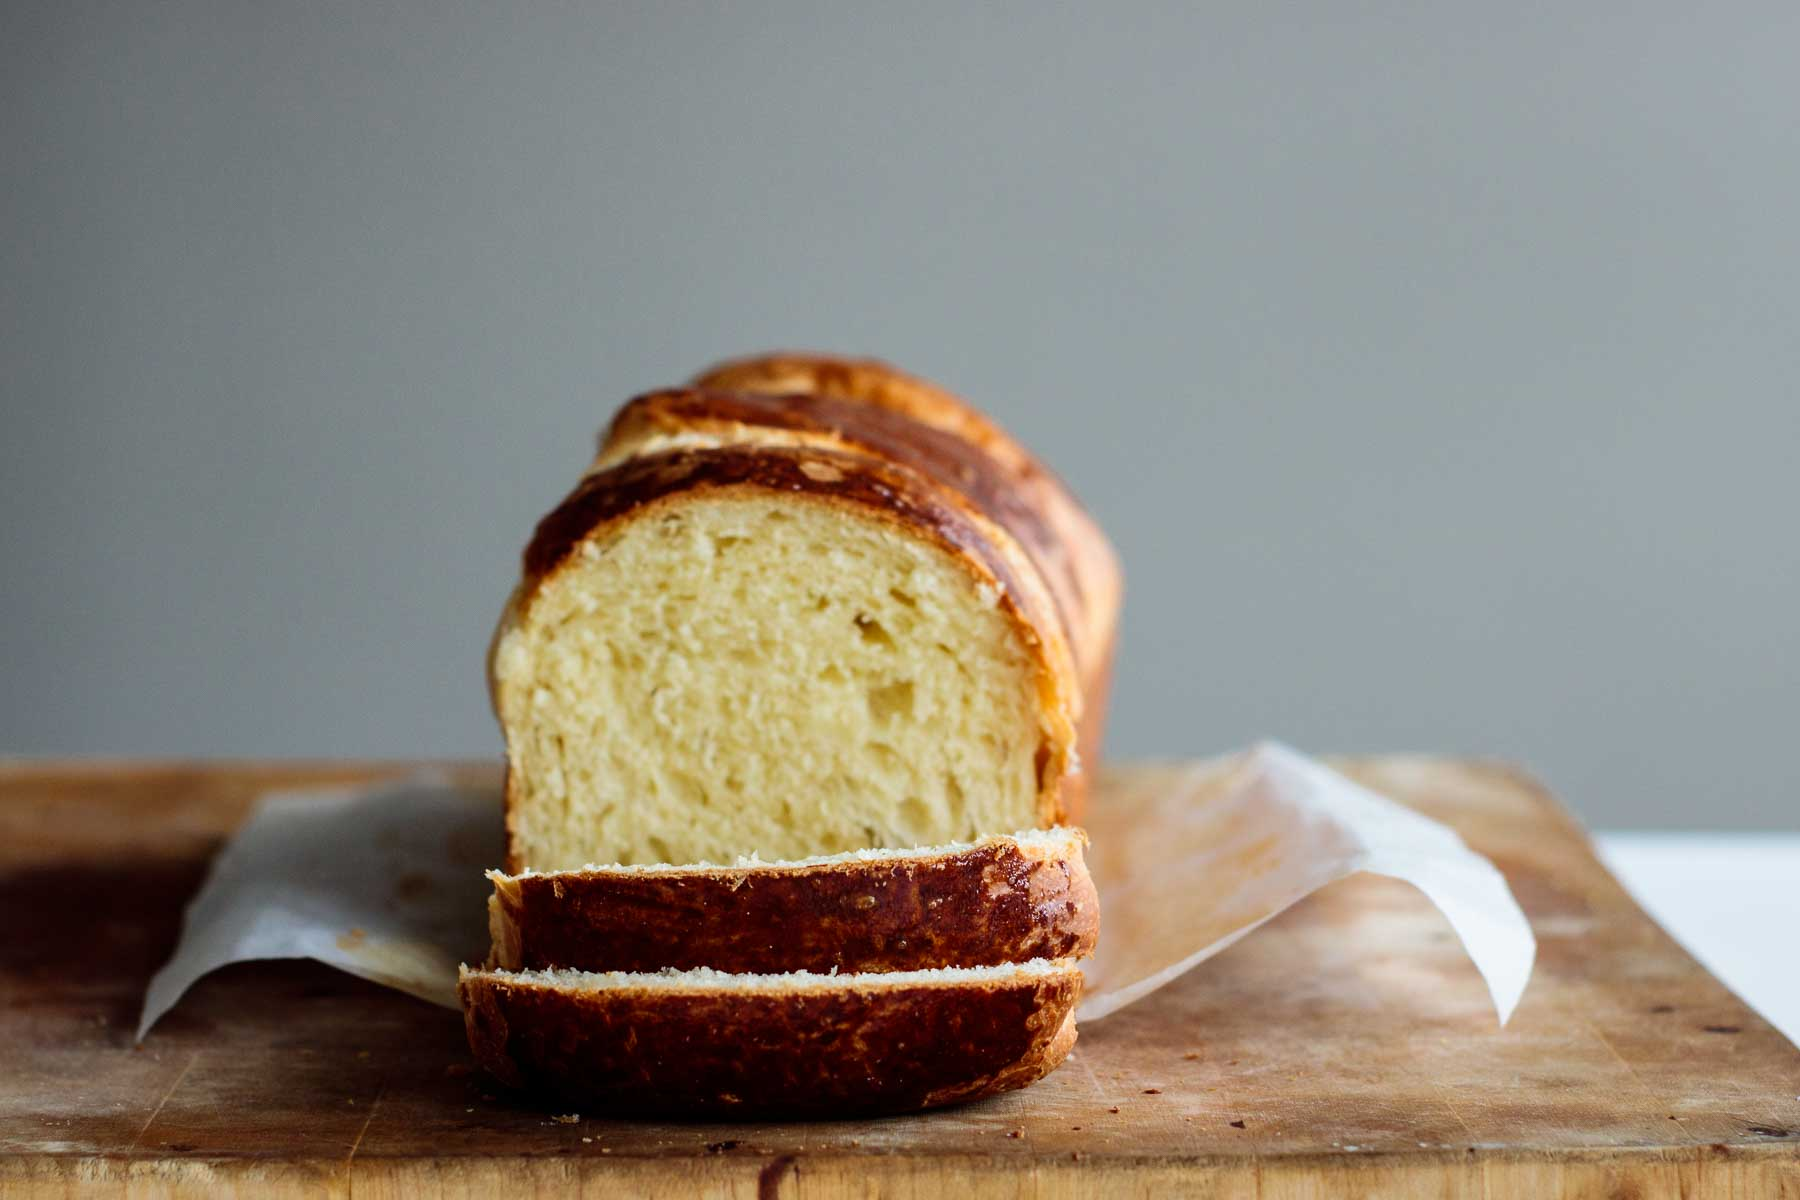 loaf sliced showing its crumb